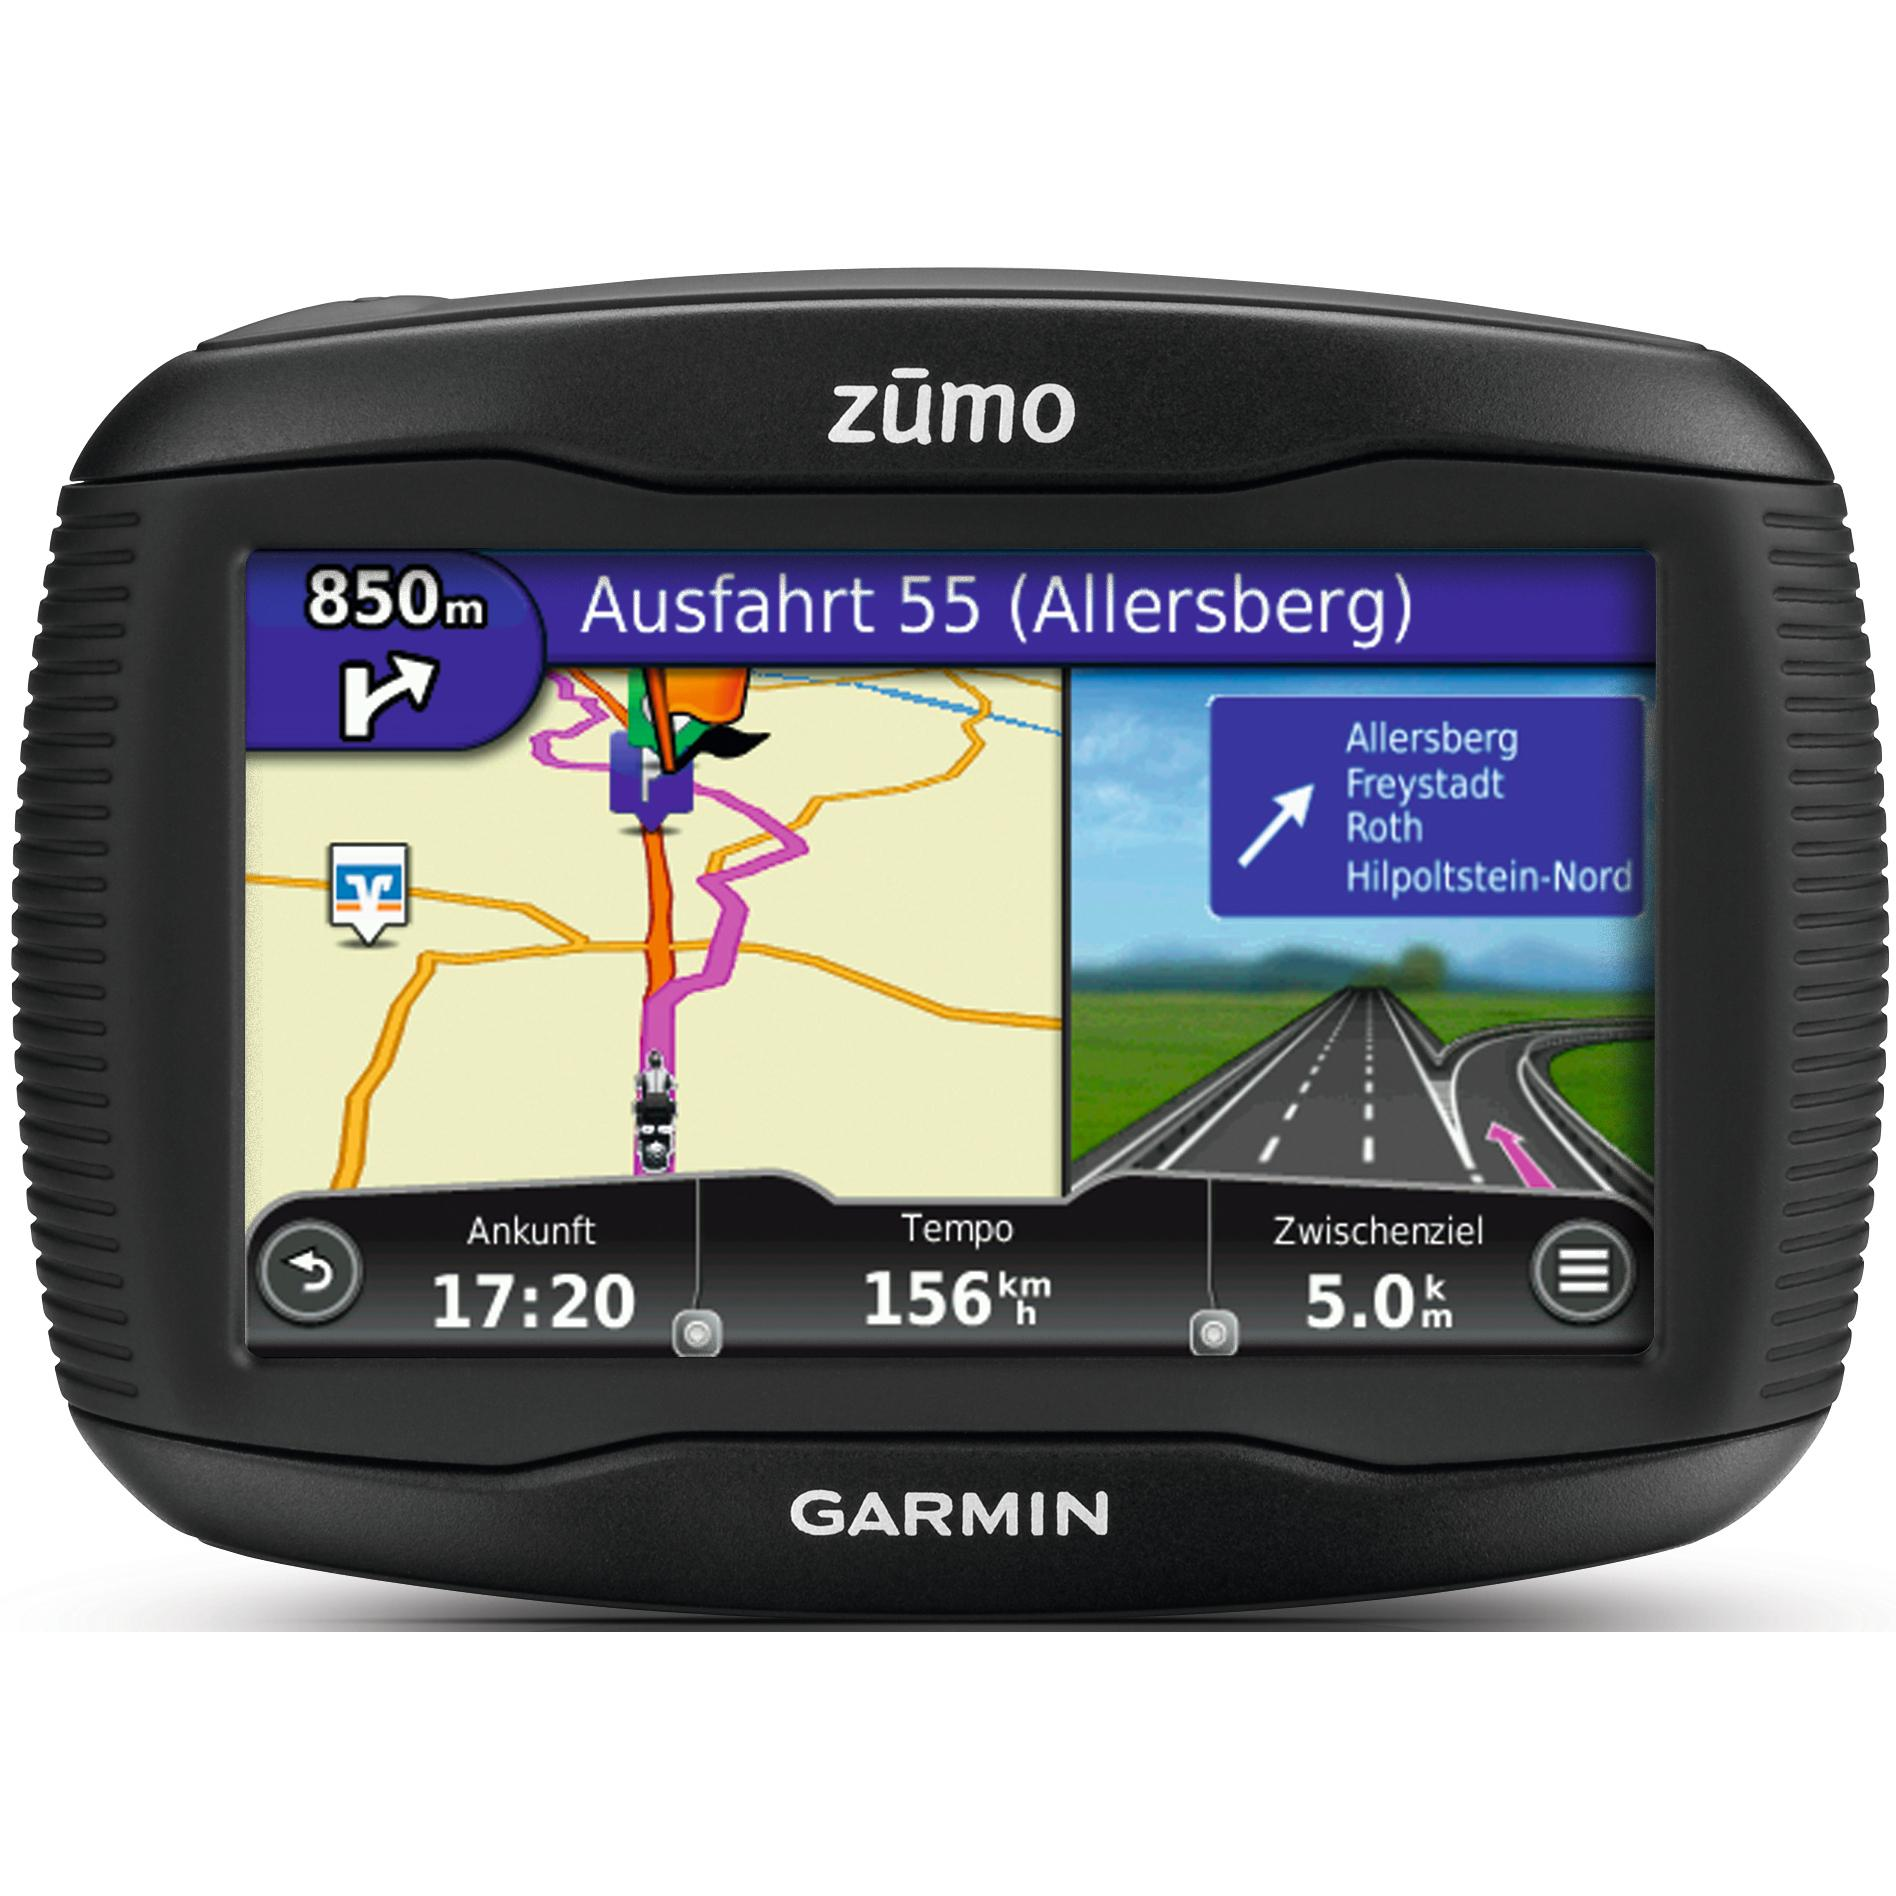 garmin zumo 340lm motorrad navi 4 3 39 39 elektronik. Black Bedroom Furniture Sets. Home Design Ideas